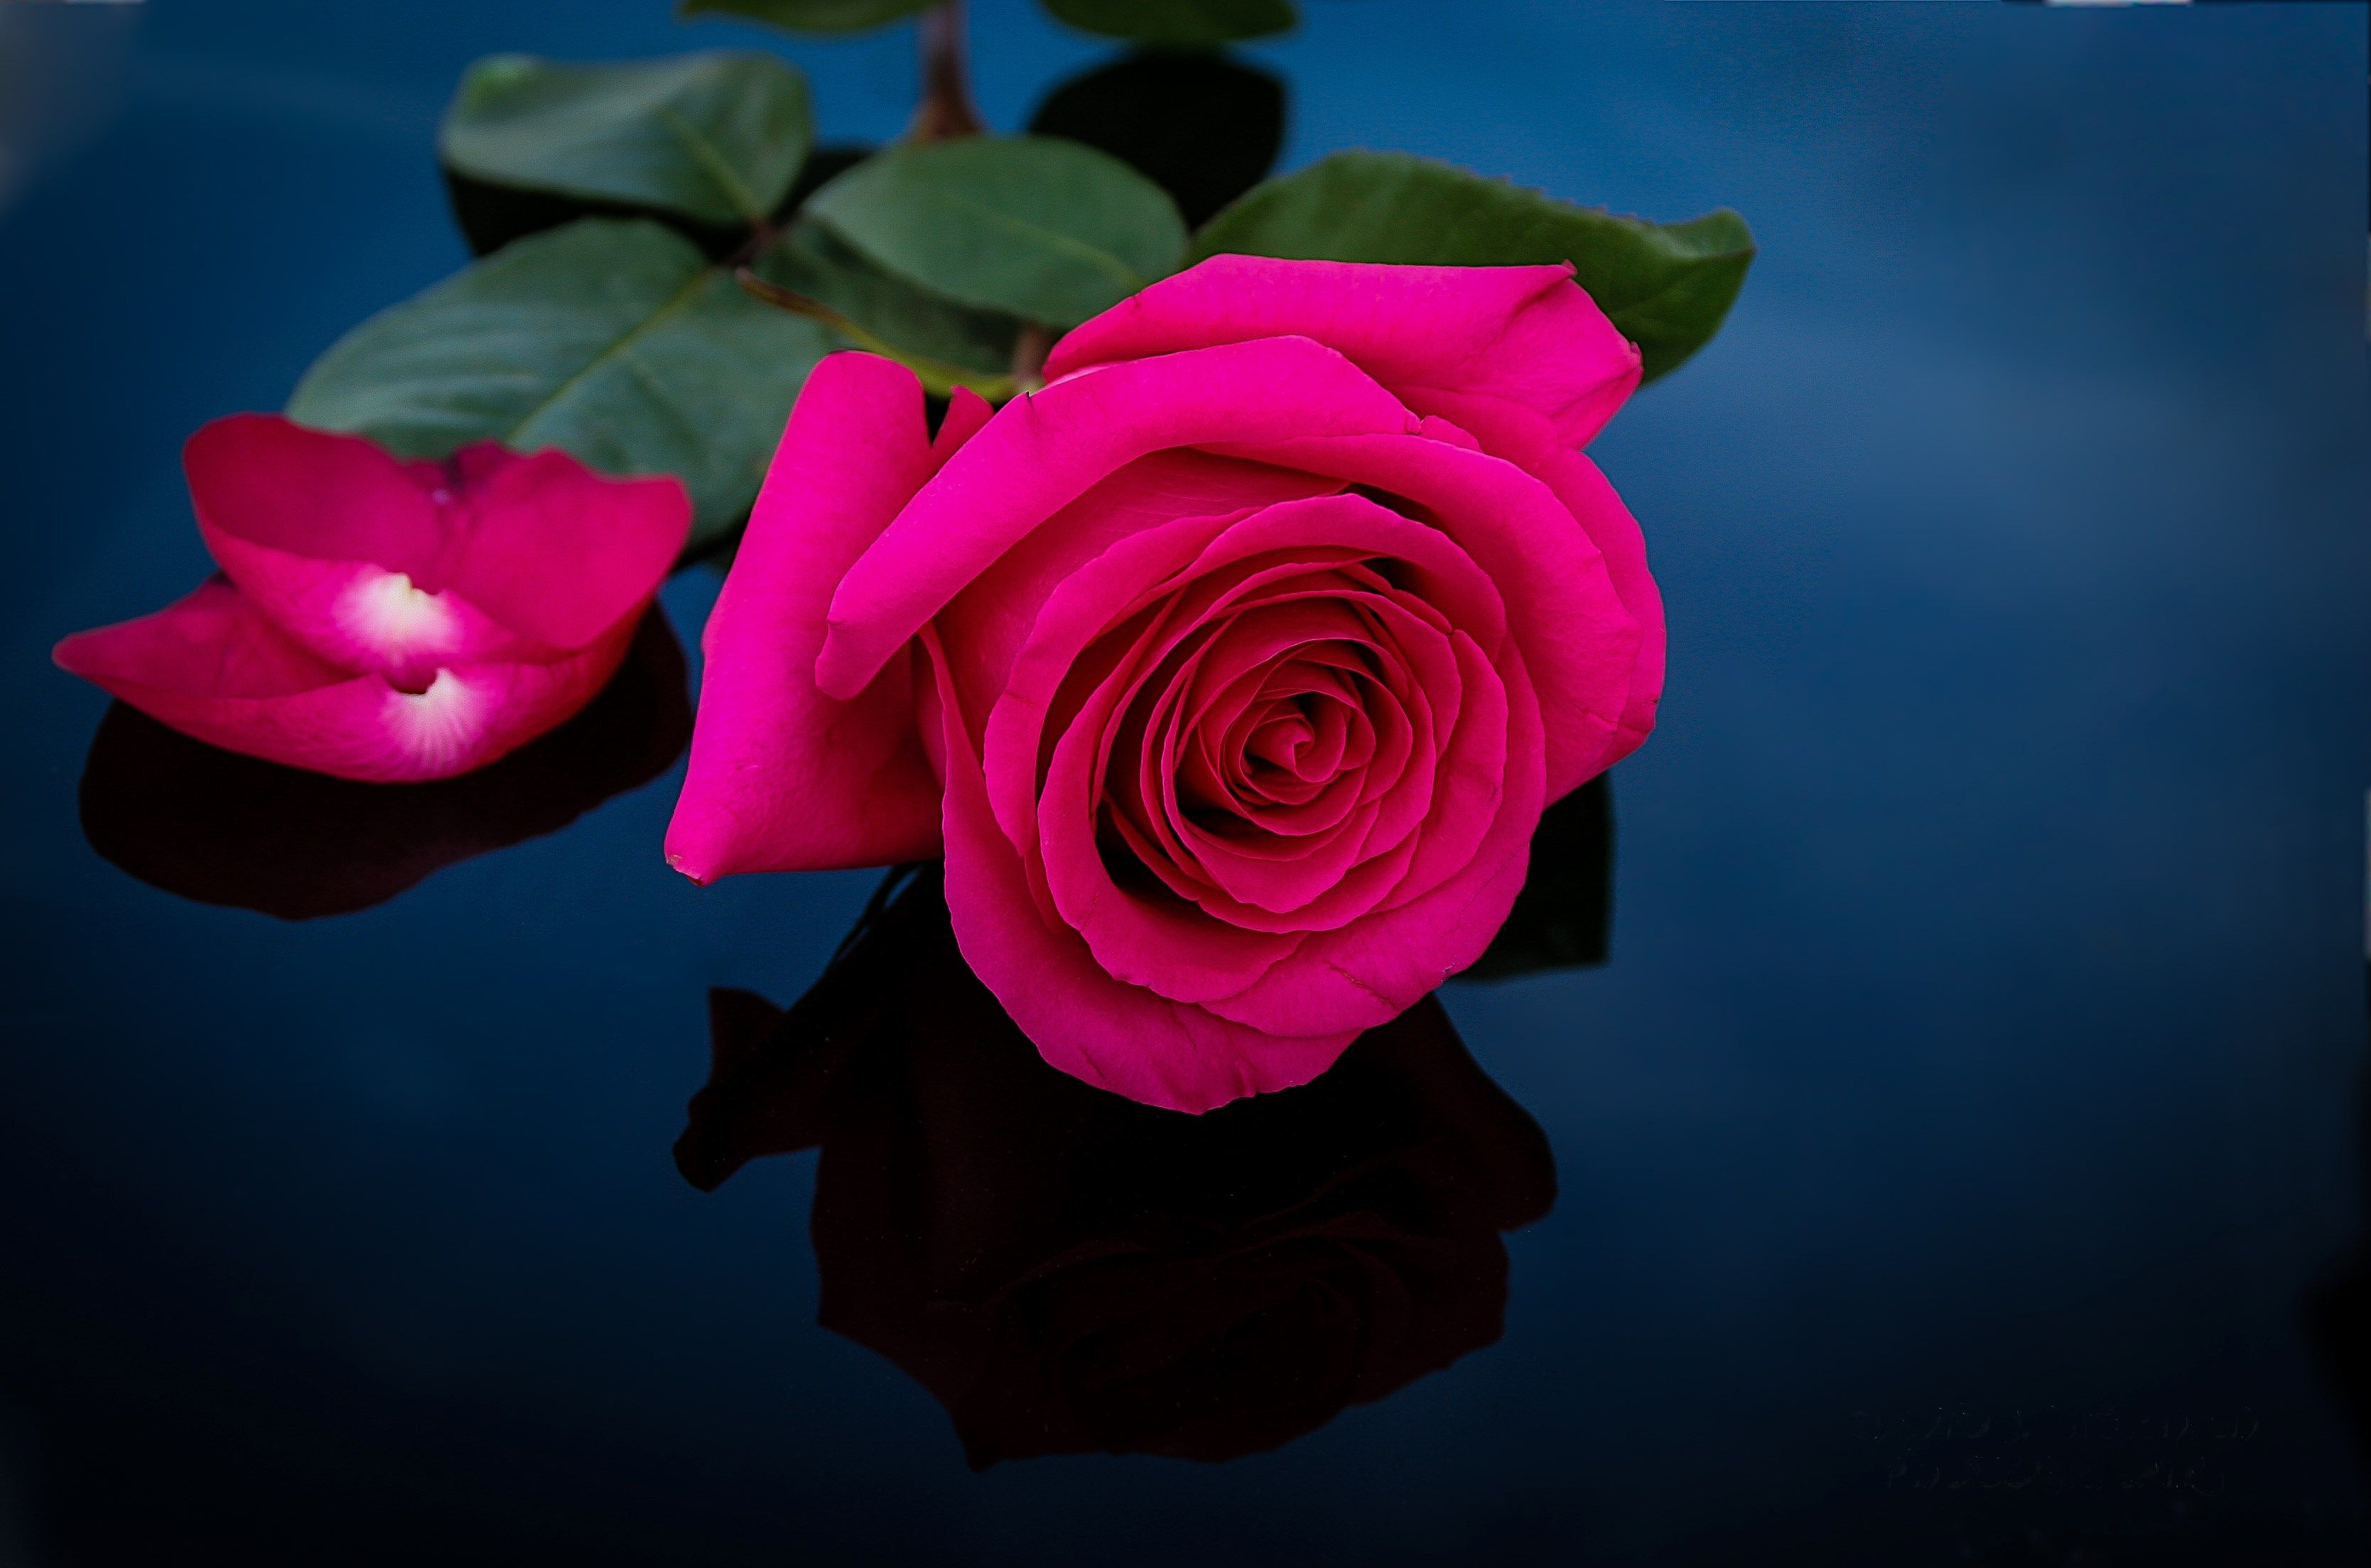 3337x2207 px rose wallpaper desktop by chapman wilkinson